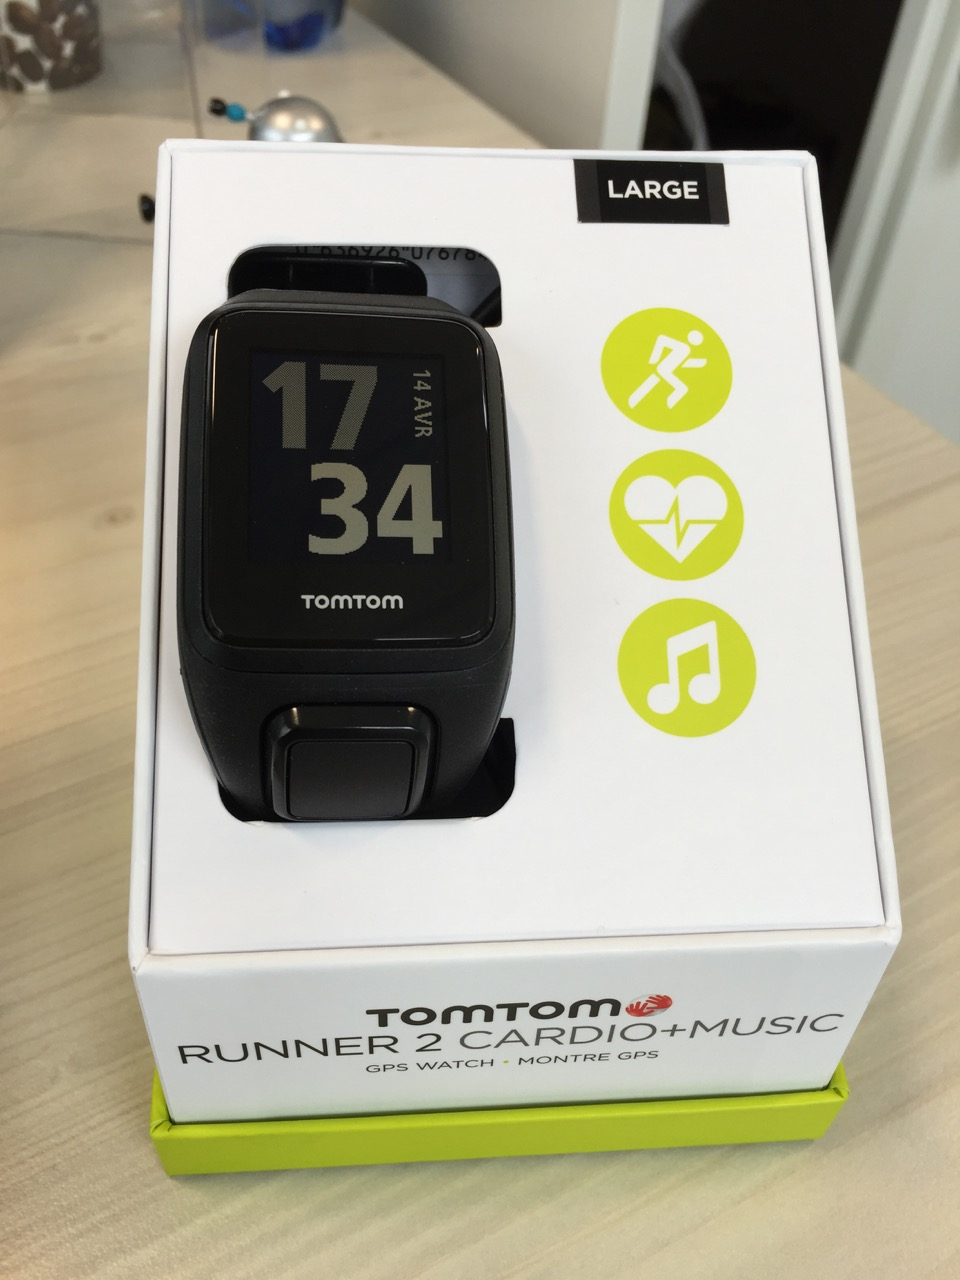 montre tomtom test